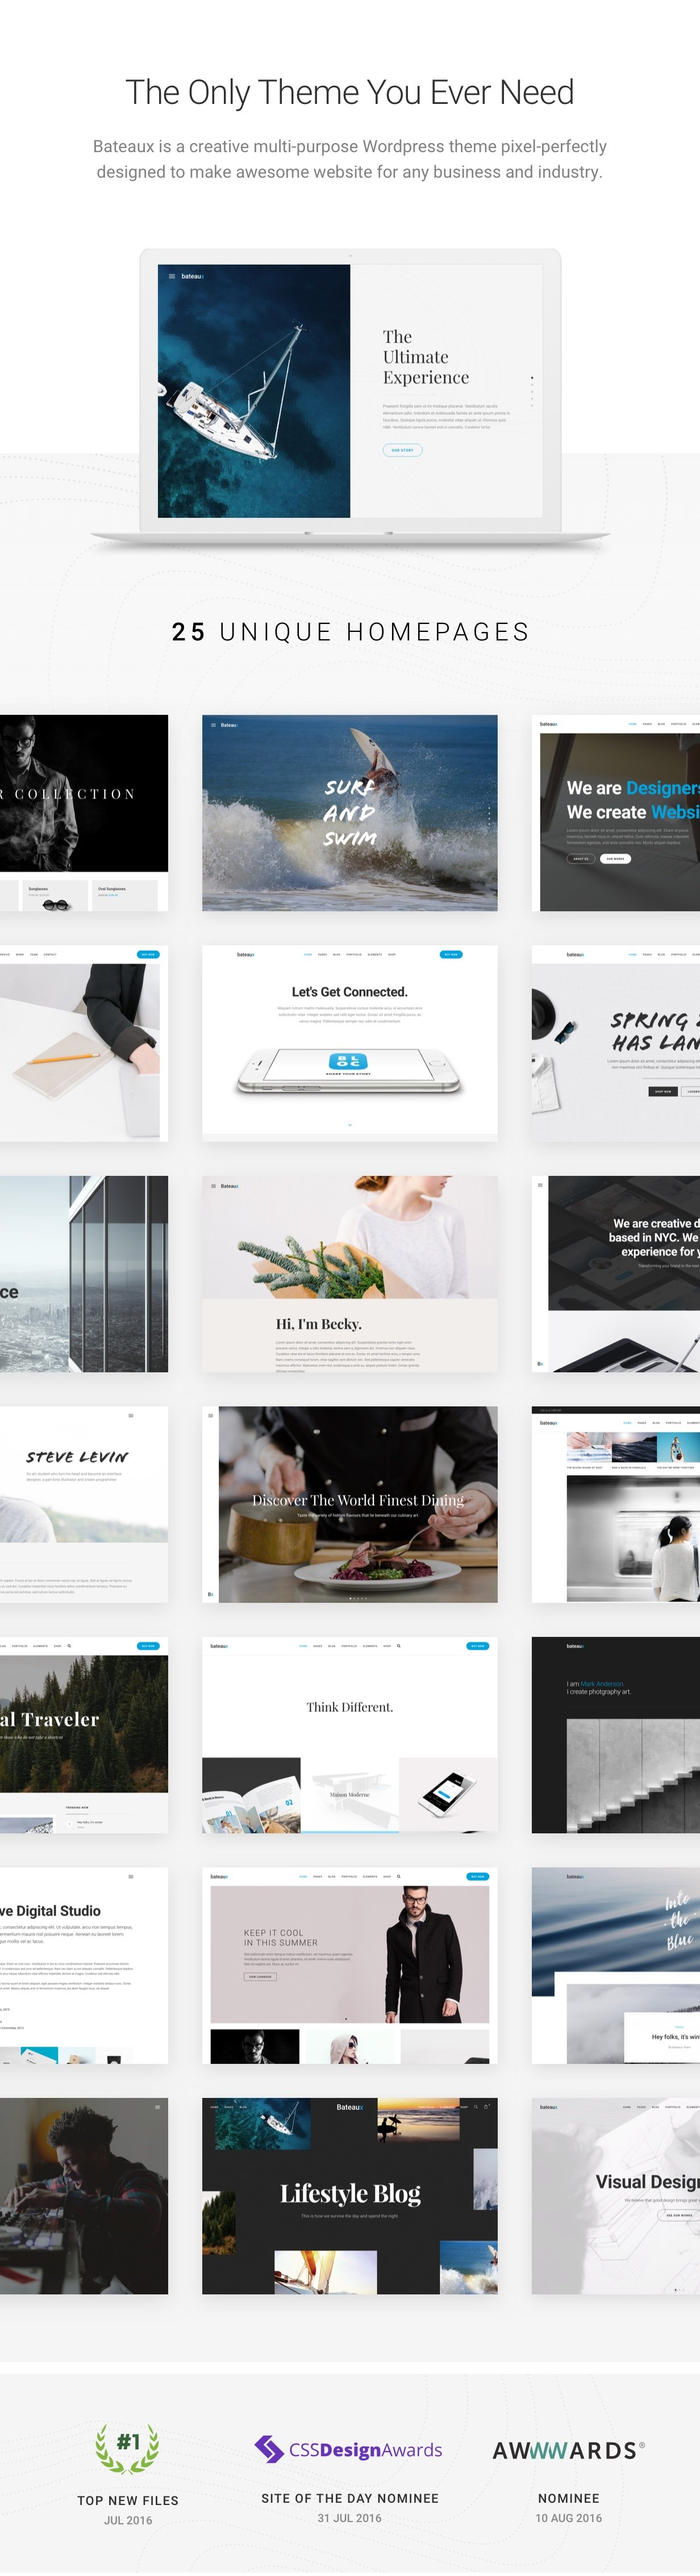 Bateaux WordPress Theme is